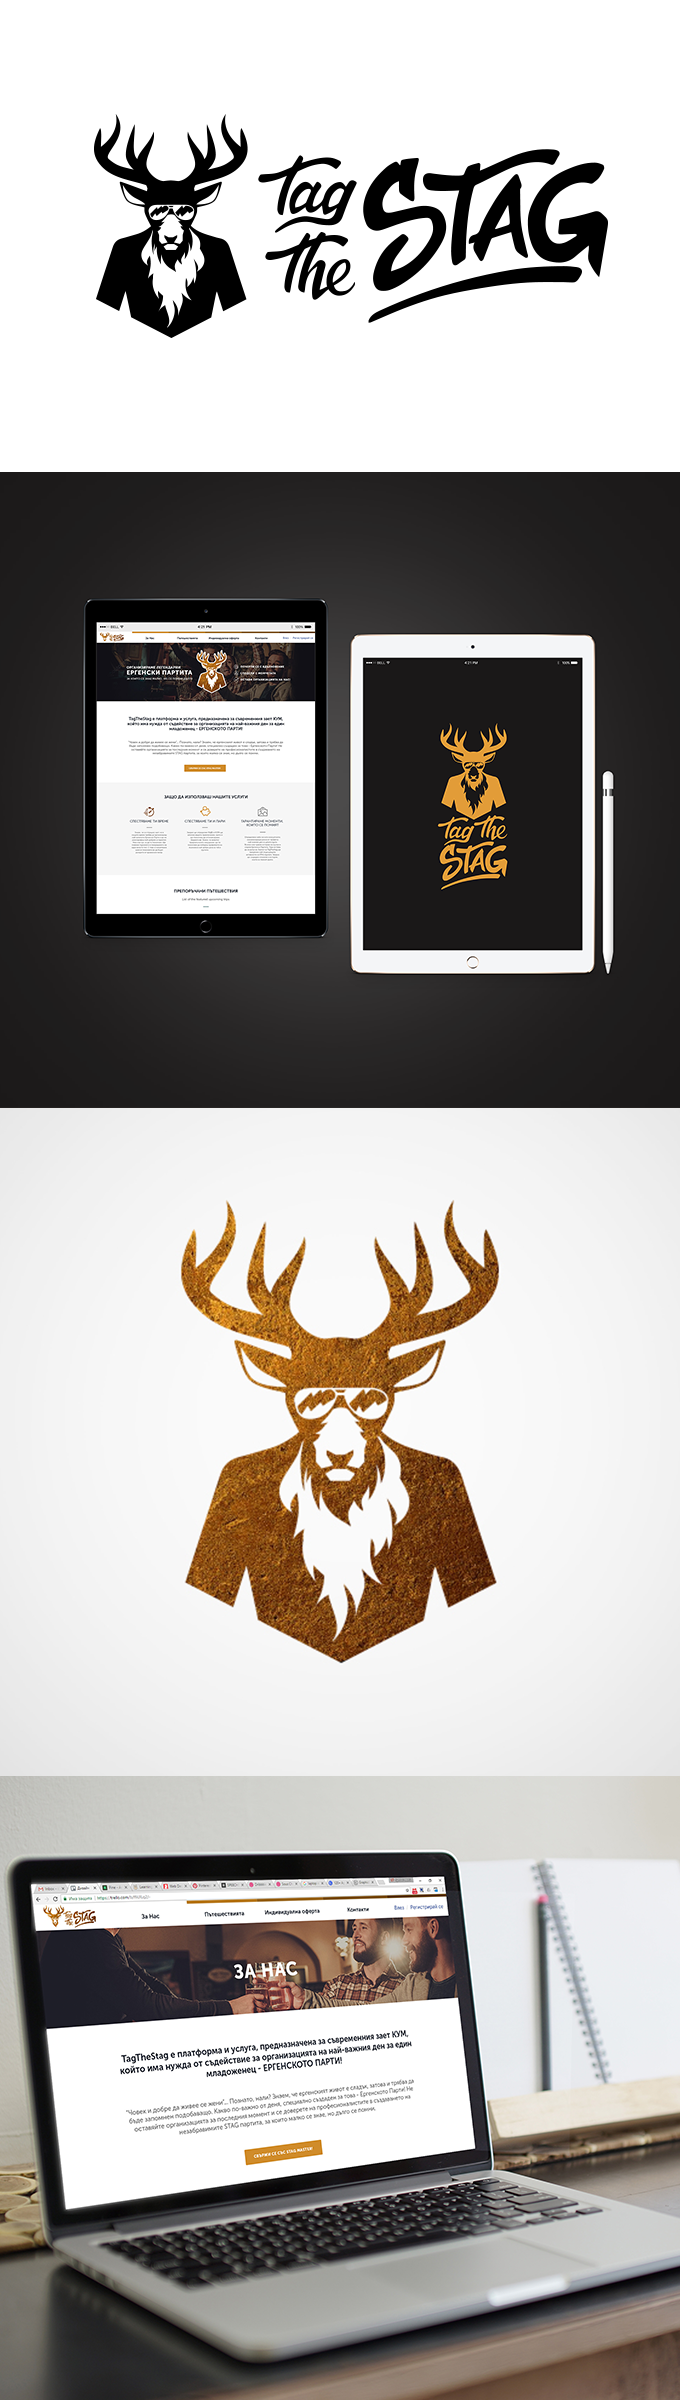 Tag TheStag Logo & Corporate